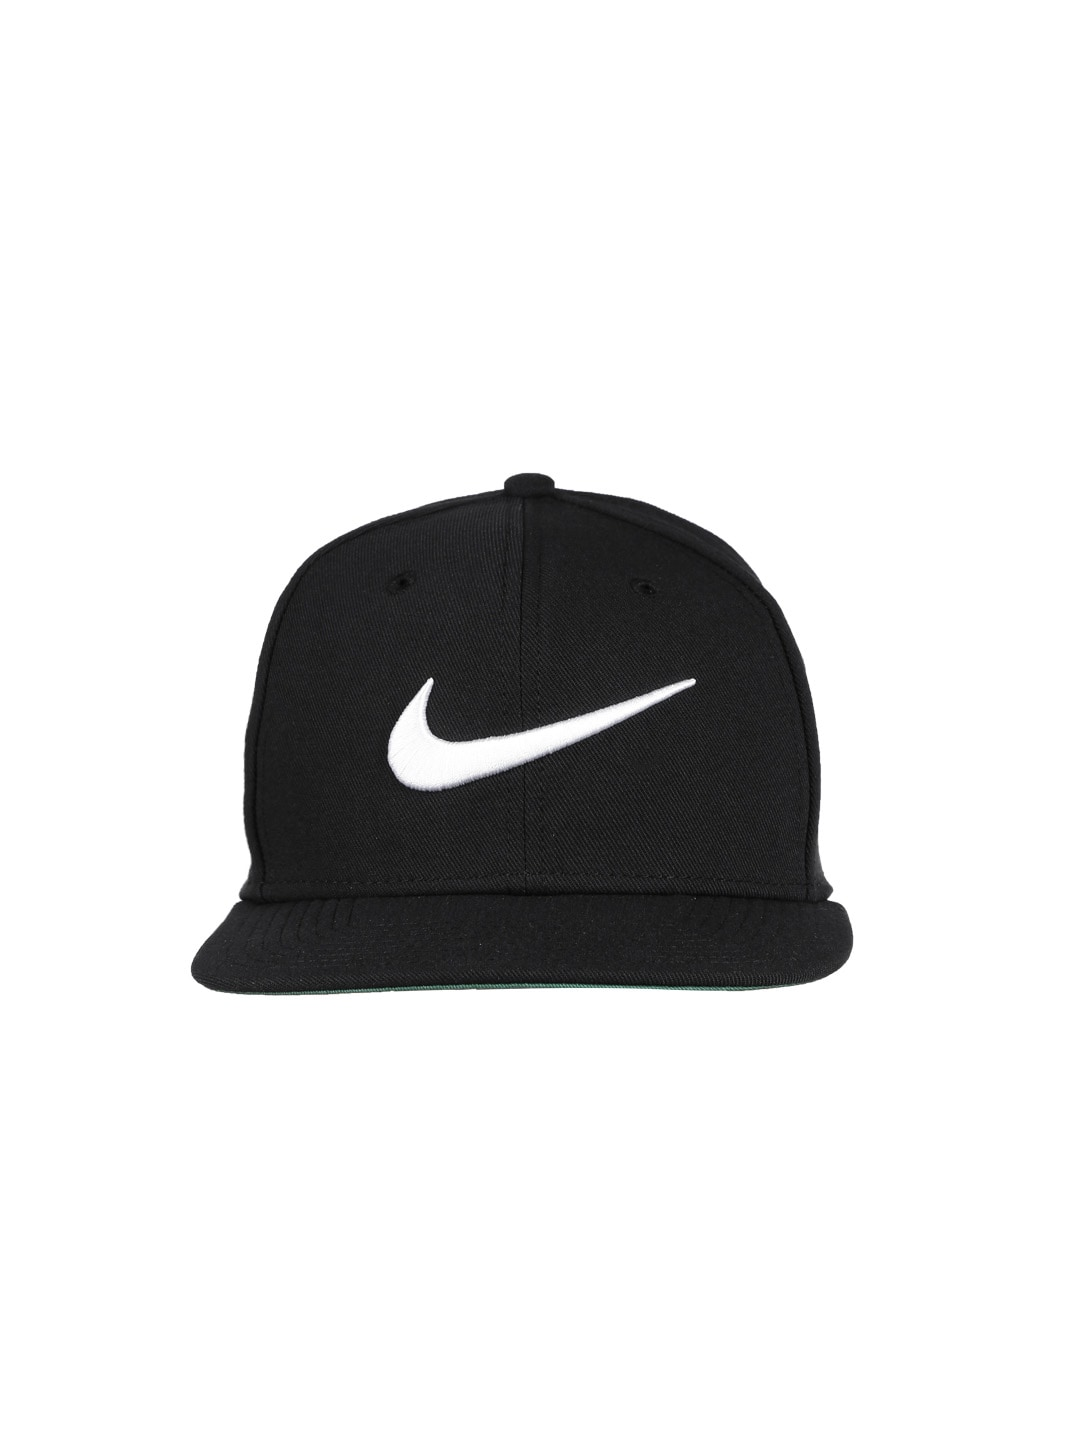 a6f13f57c0028 Nike Tights Caps Tops - Buy Nike Tights Caps Tops online in India